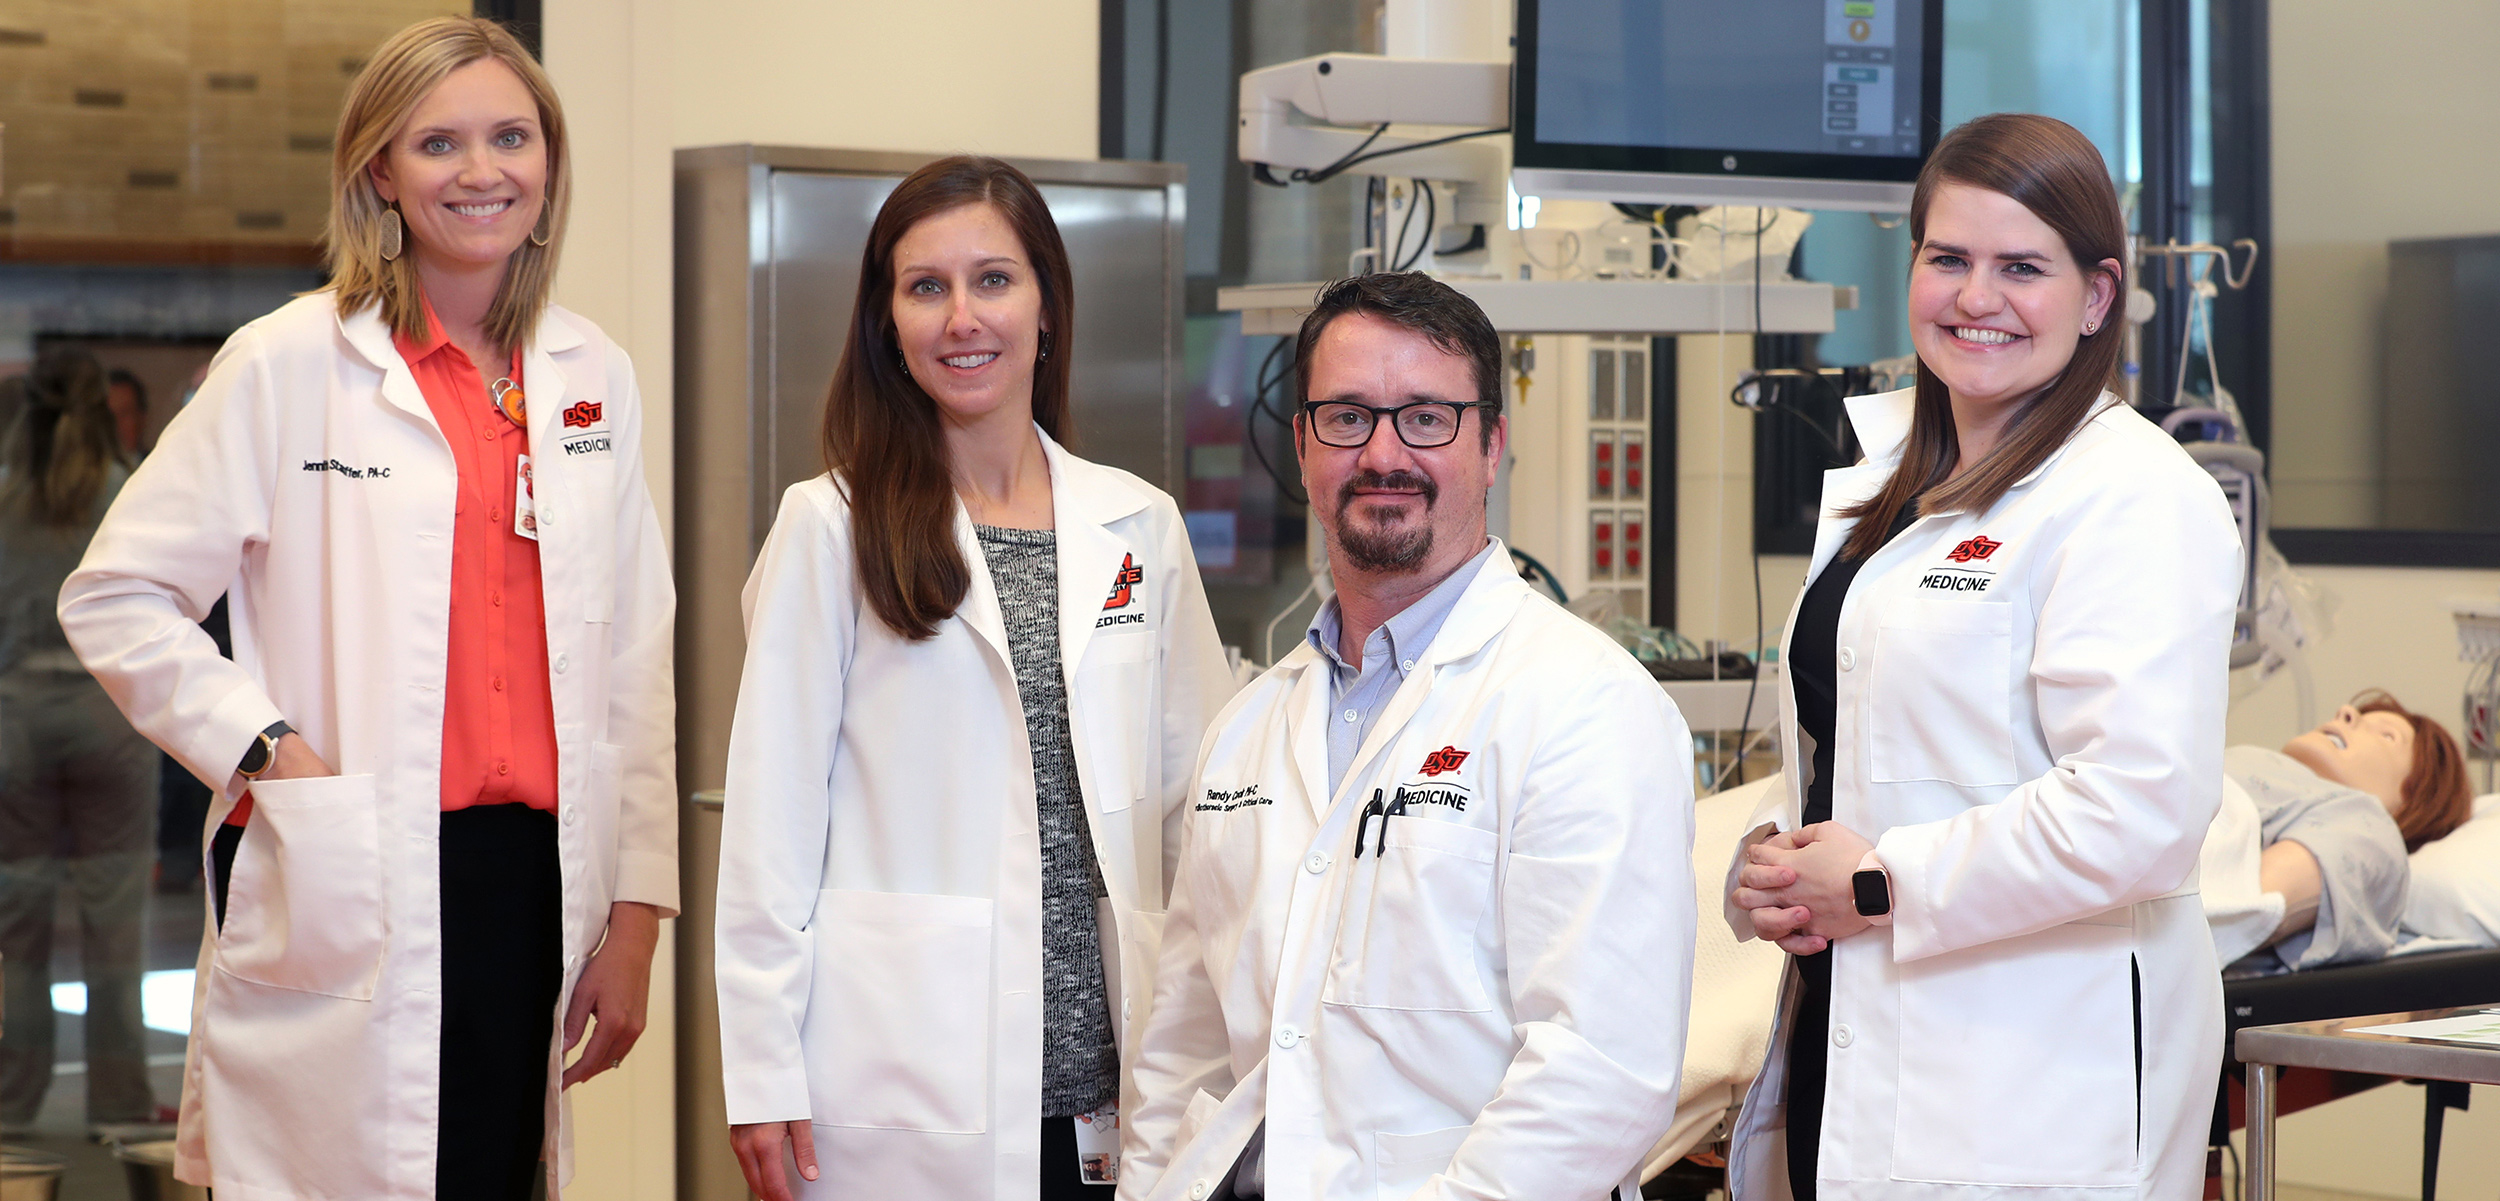 Faculty from the Physicians Assistant Program, including Jennifer Stauffer (left), Amy Harrison, Randy Cook and Rebecca Stephen (right), at OSU for Health Sciences.